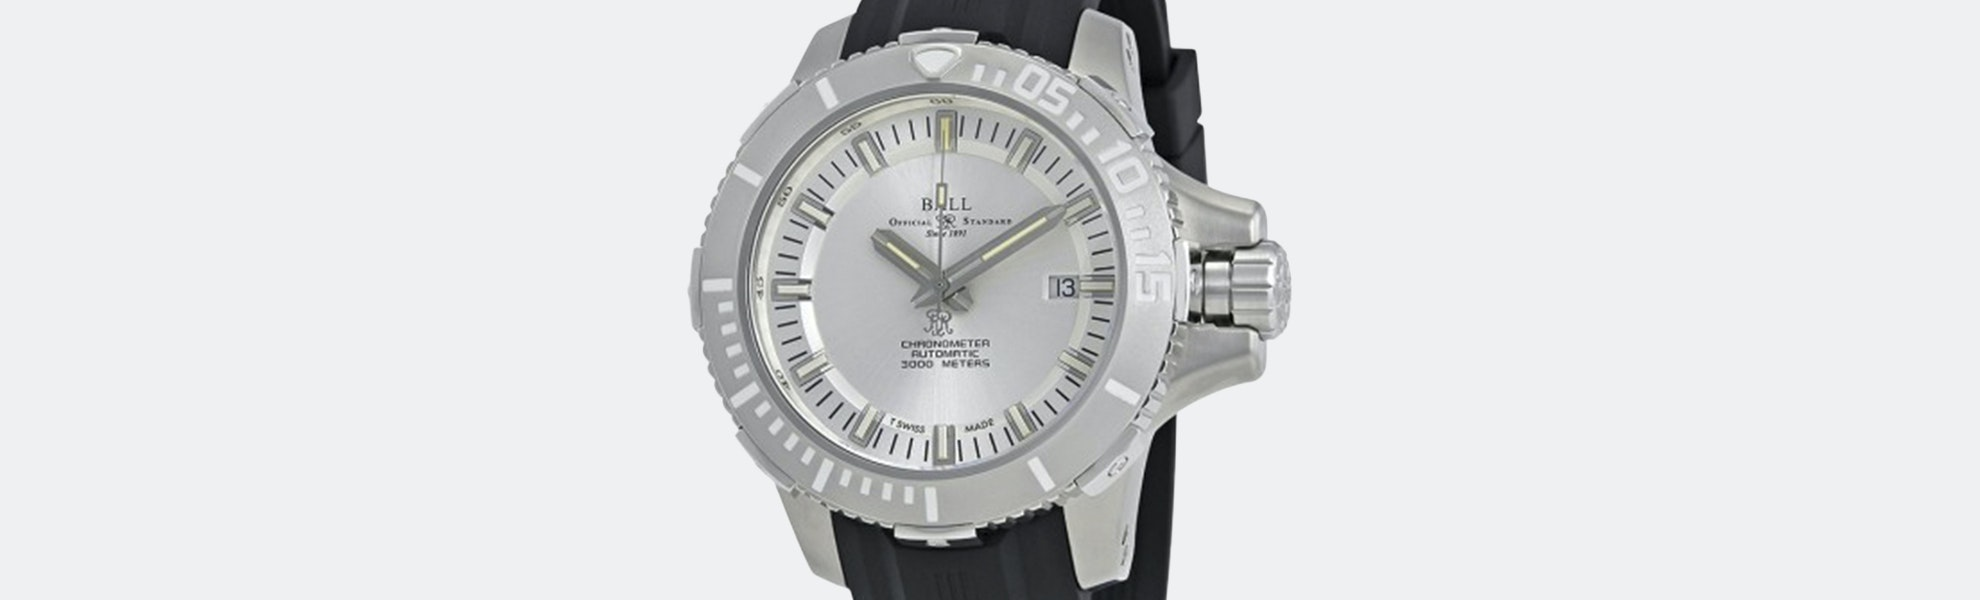 Ball Engineer Hydrocarbon DeepQUEST Automatic Watch